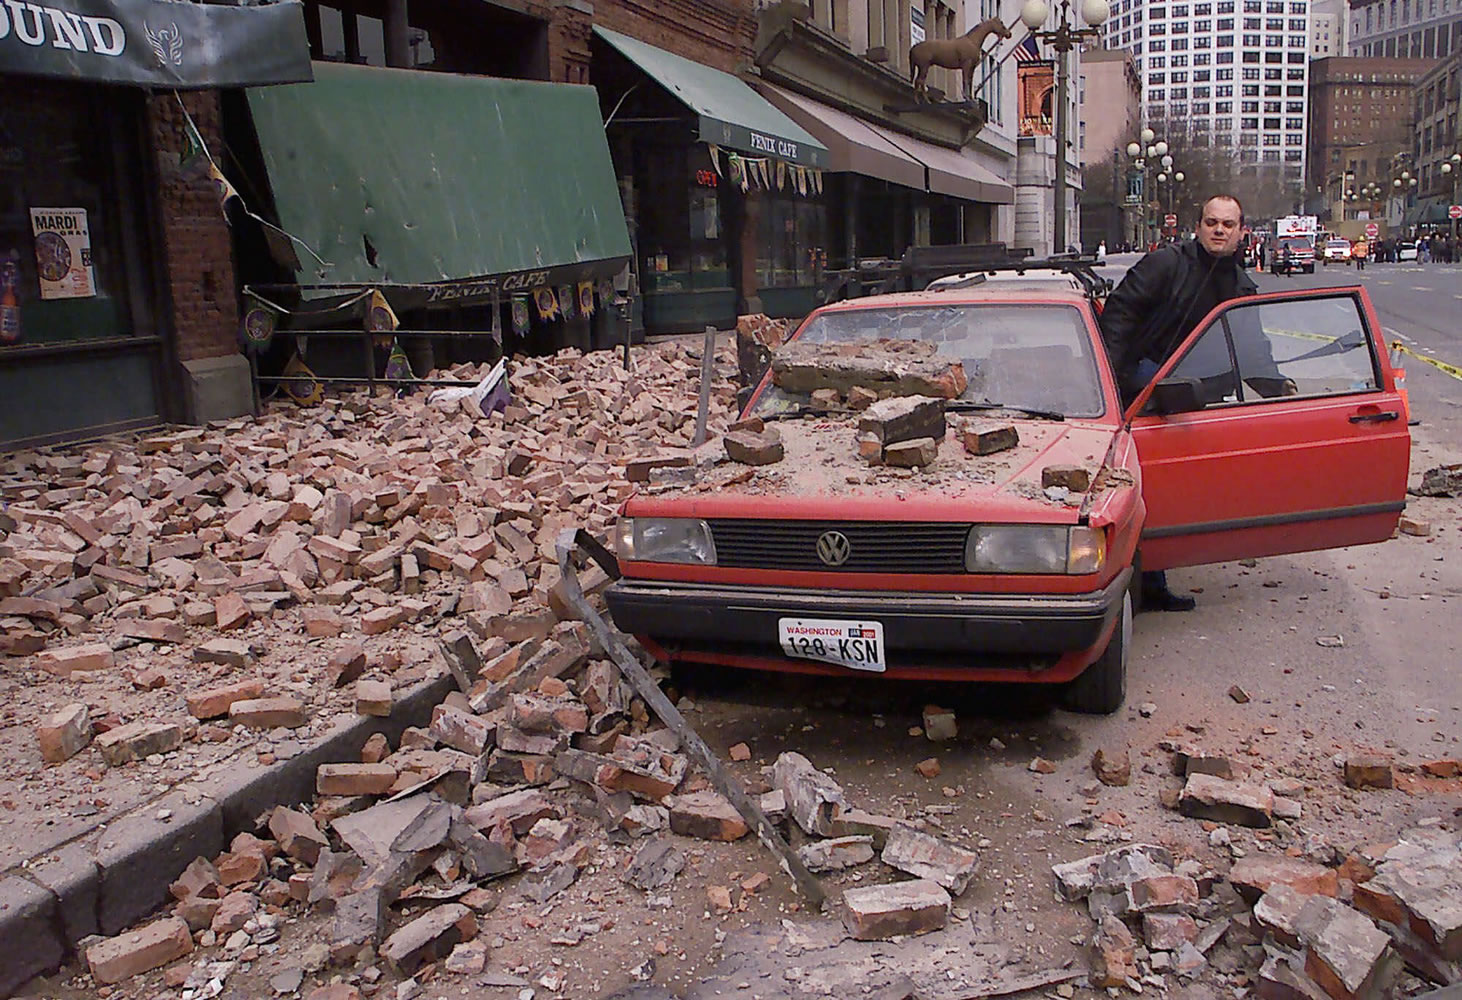 FILES/Associated Paul Riek checks to see if his car starts after debris fell on it from the top half of a nearby building during the 2001 Nisqually earthquake in Seattle. The 6.8 earthquake caused extensive damage, but earthquakes of that size are not uncommon in the Pacific Northwest.